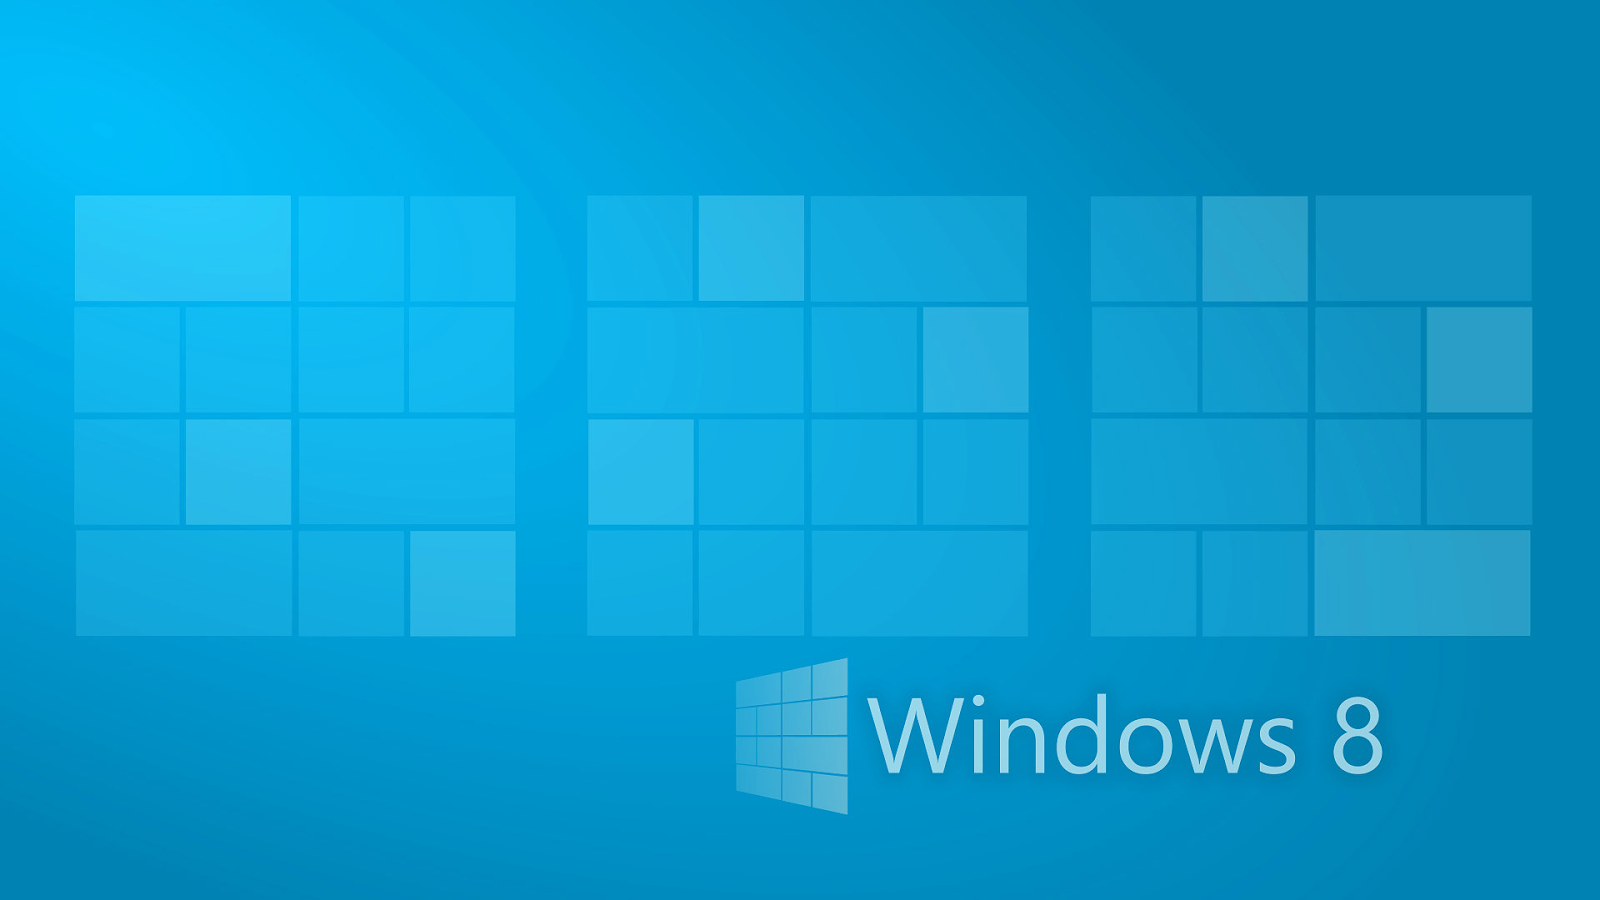 Blauen Windows 8 desktopmotive